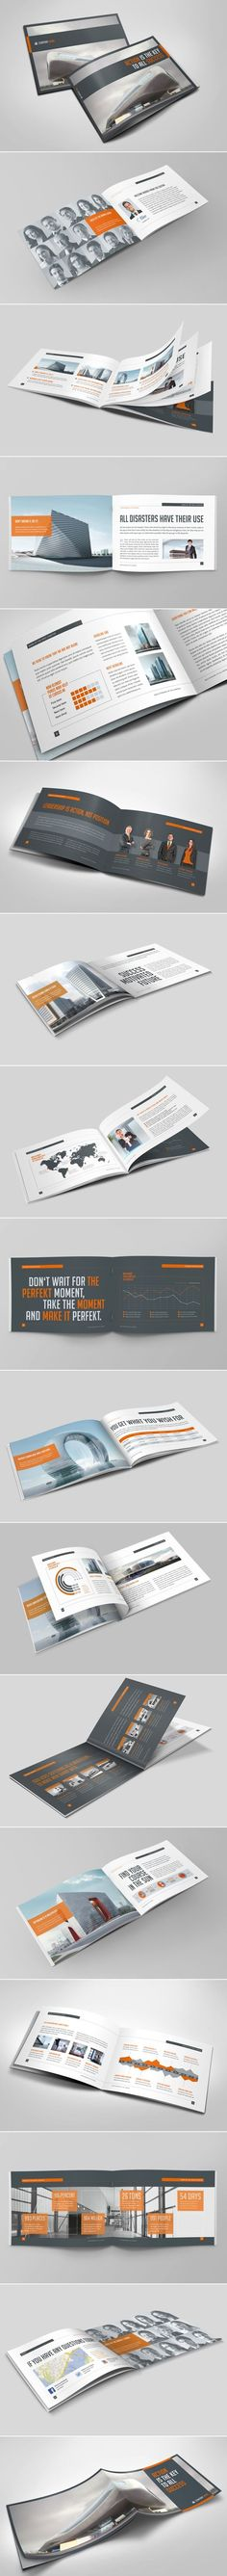 Buy Business Horizontal Brochure by mikinger on GraphicRiver. Business Horizontal Brochure This is the DIN corporate brochure out of my Business series. Design Typo, Web Design, Layout Design, Design Art, Design Ideas, Graphic Design Brochure, Brochure Design Inspiration, Layout Inspiration, Corporate Brochure Design